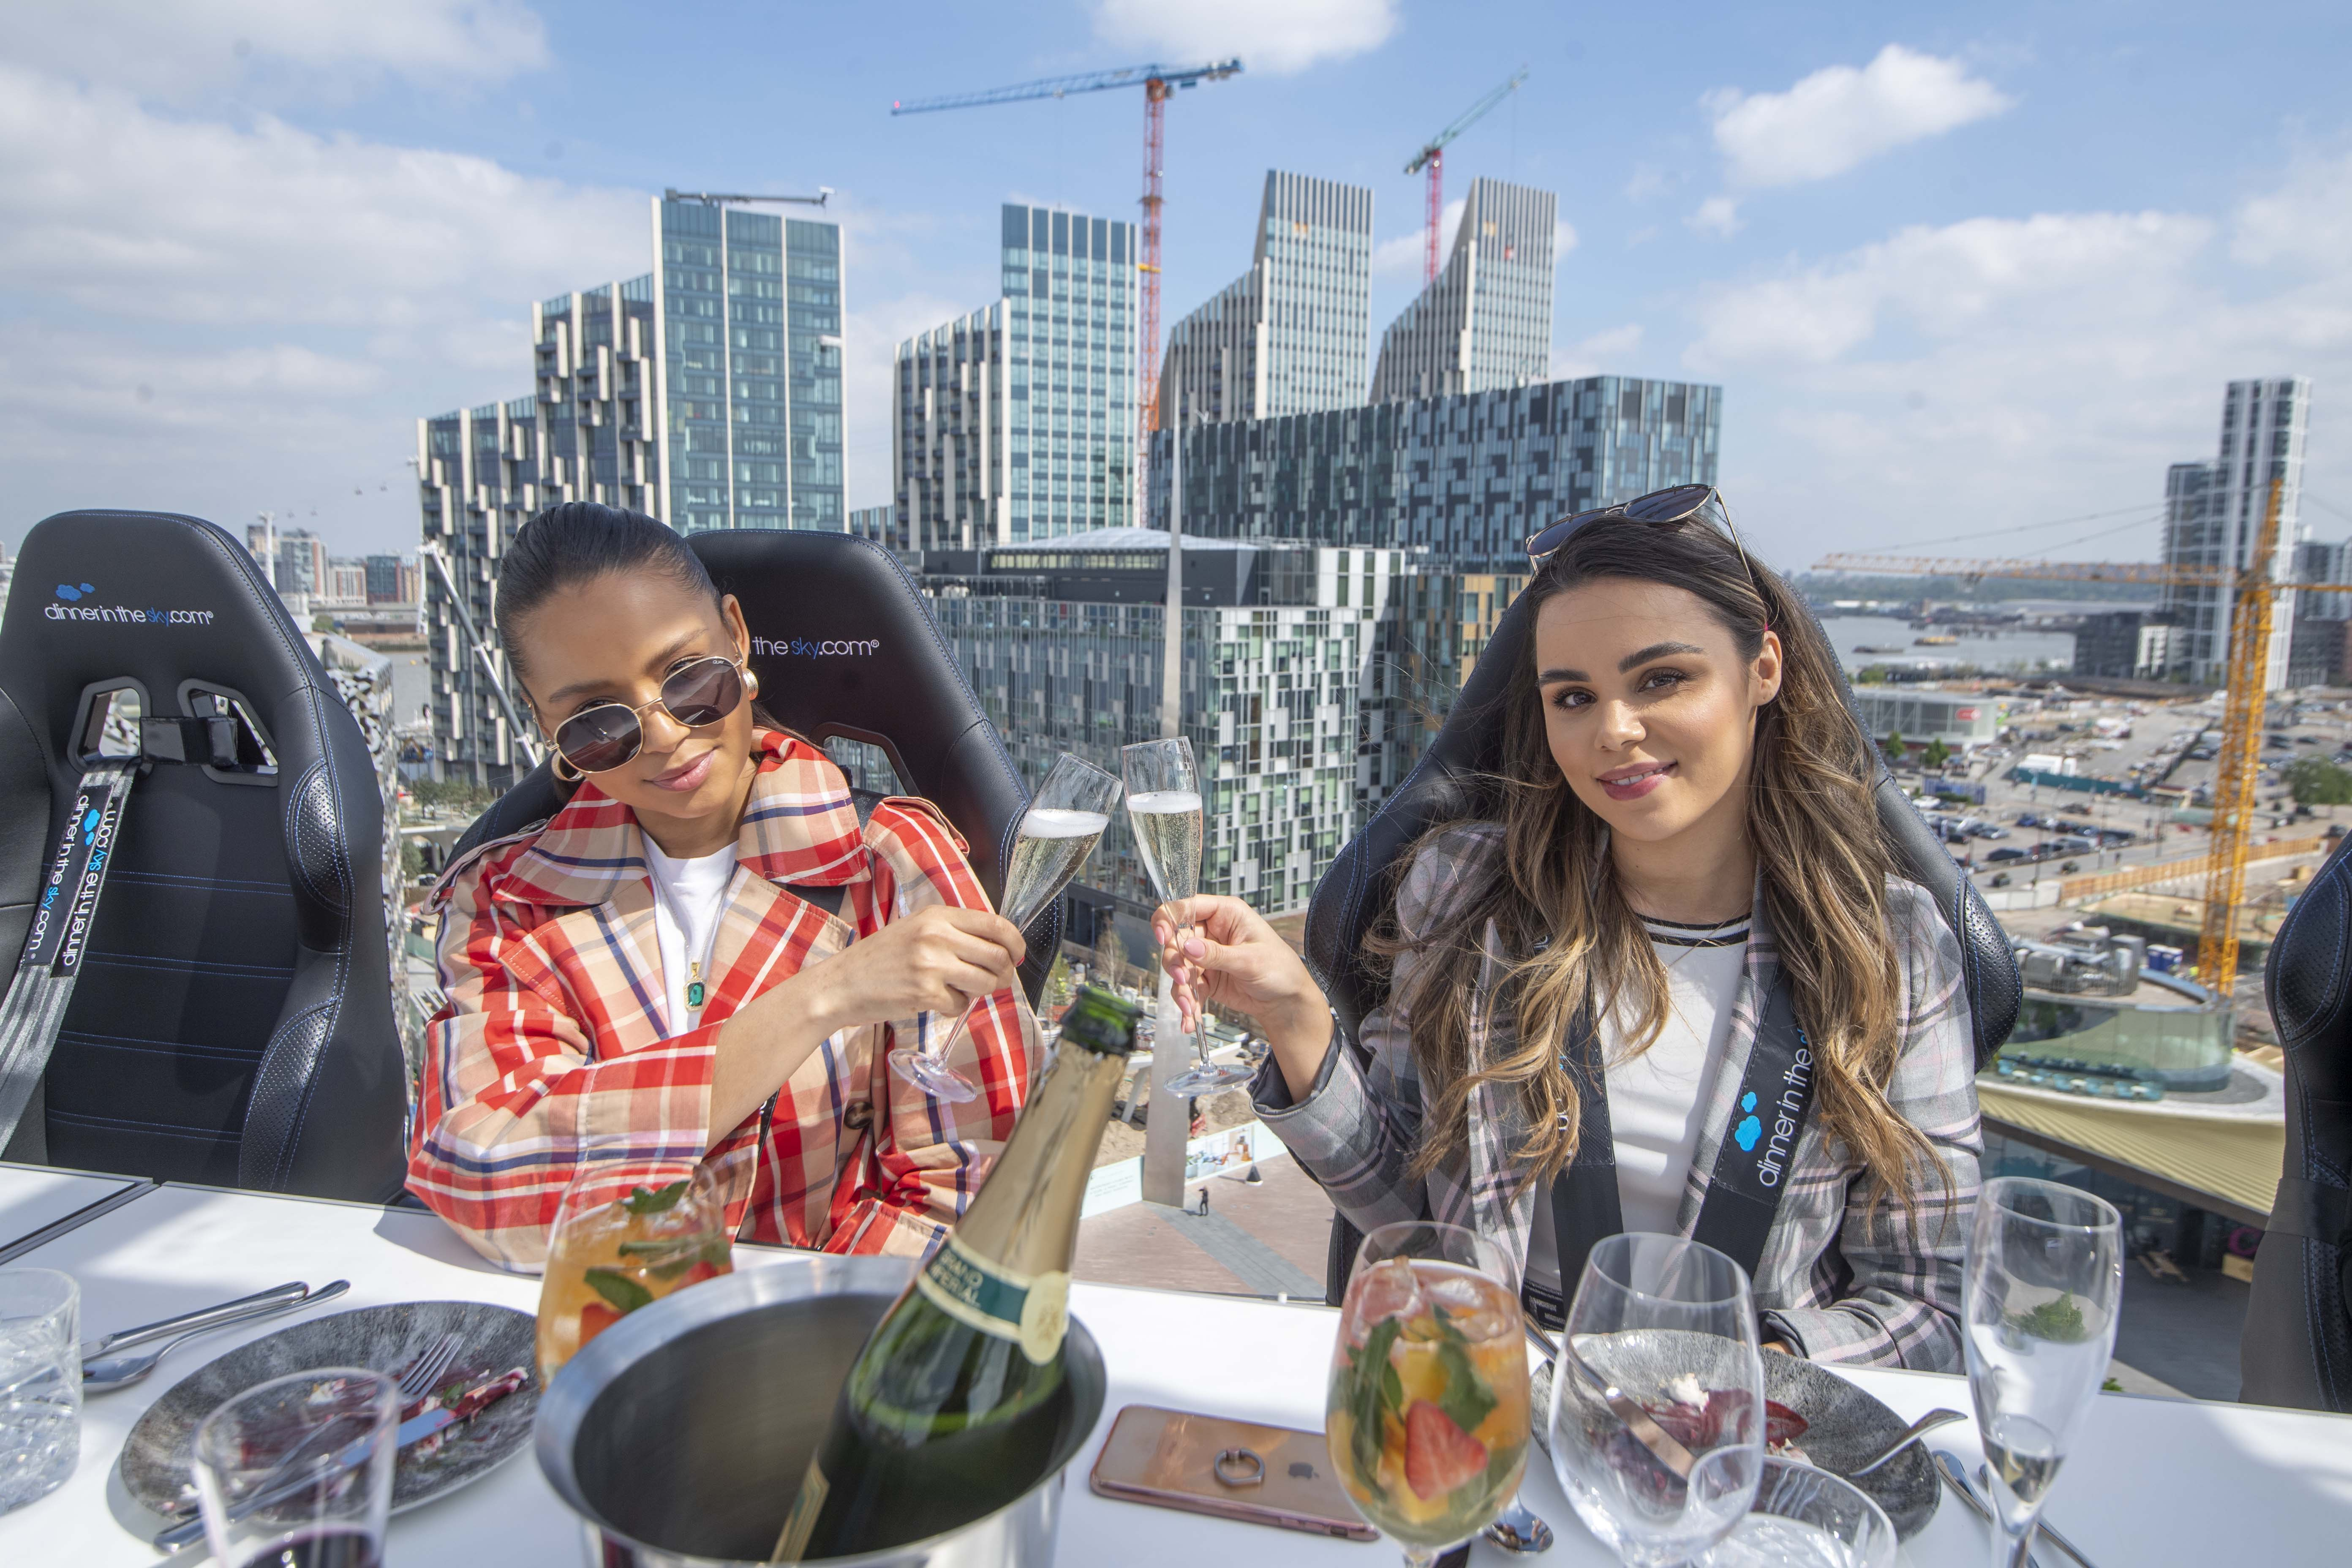 Bottomless Brunch in the Sky, london in the sky review, london in the sky brunch